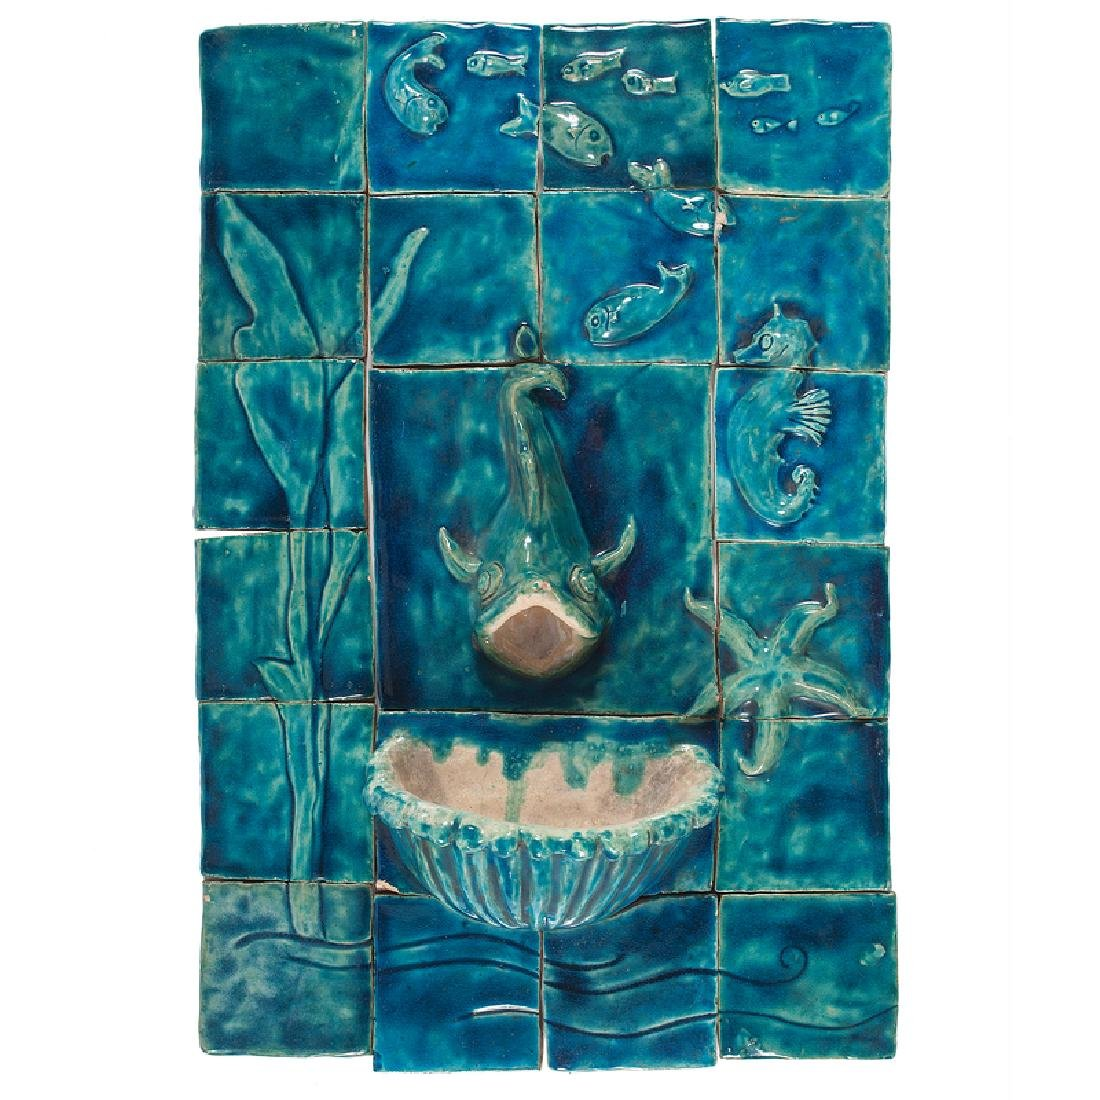 Ceramic Tile Wall Fountain by Ida Carmichael